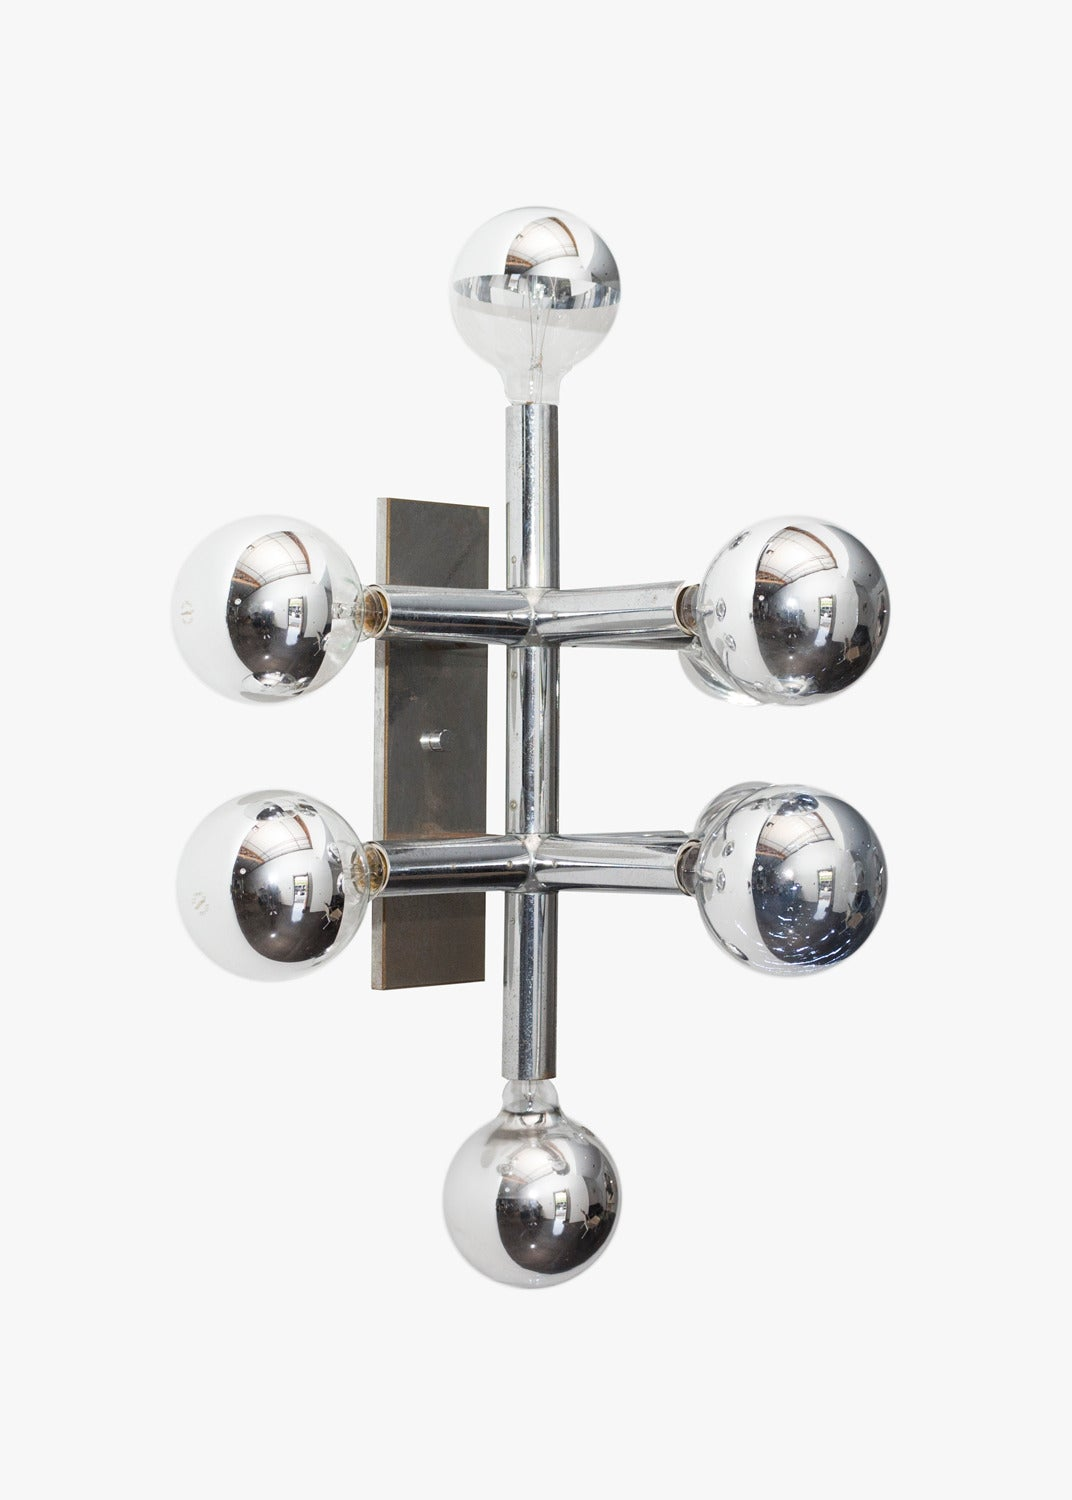 Vintage Chrome Wall Light For Sale at 1stdibs